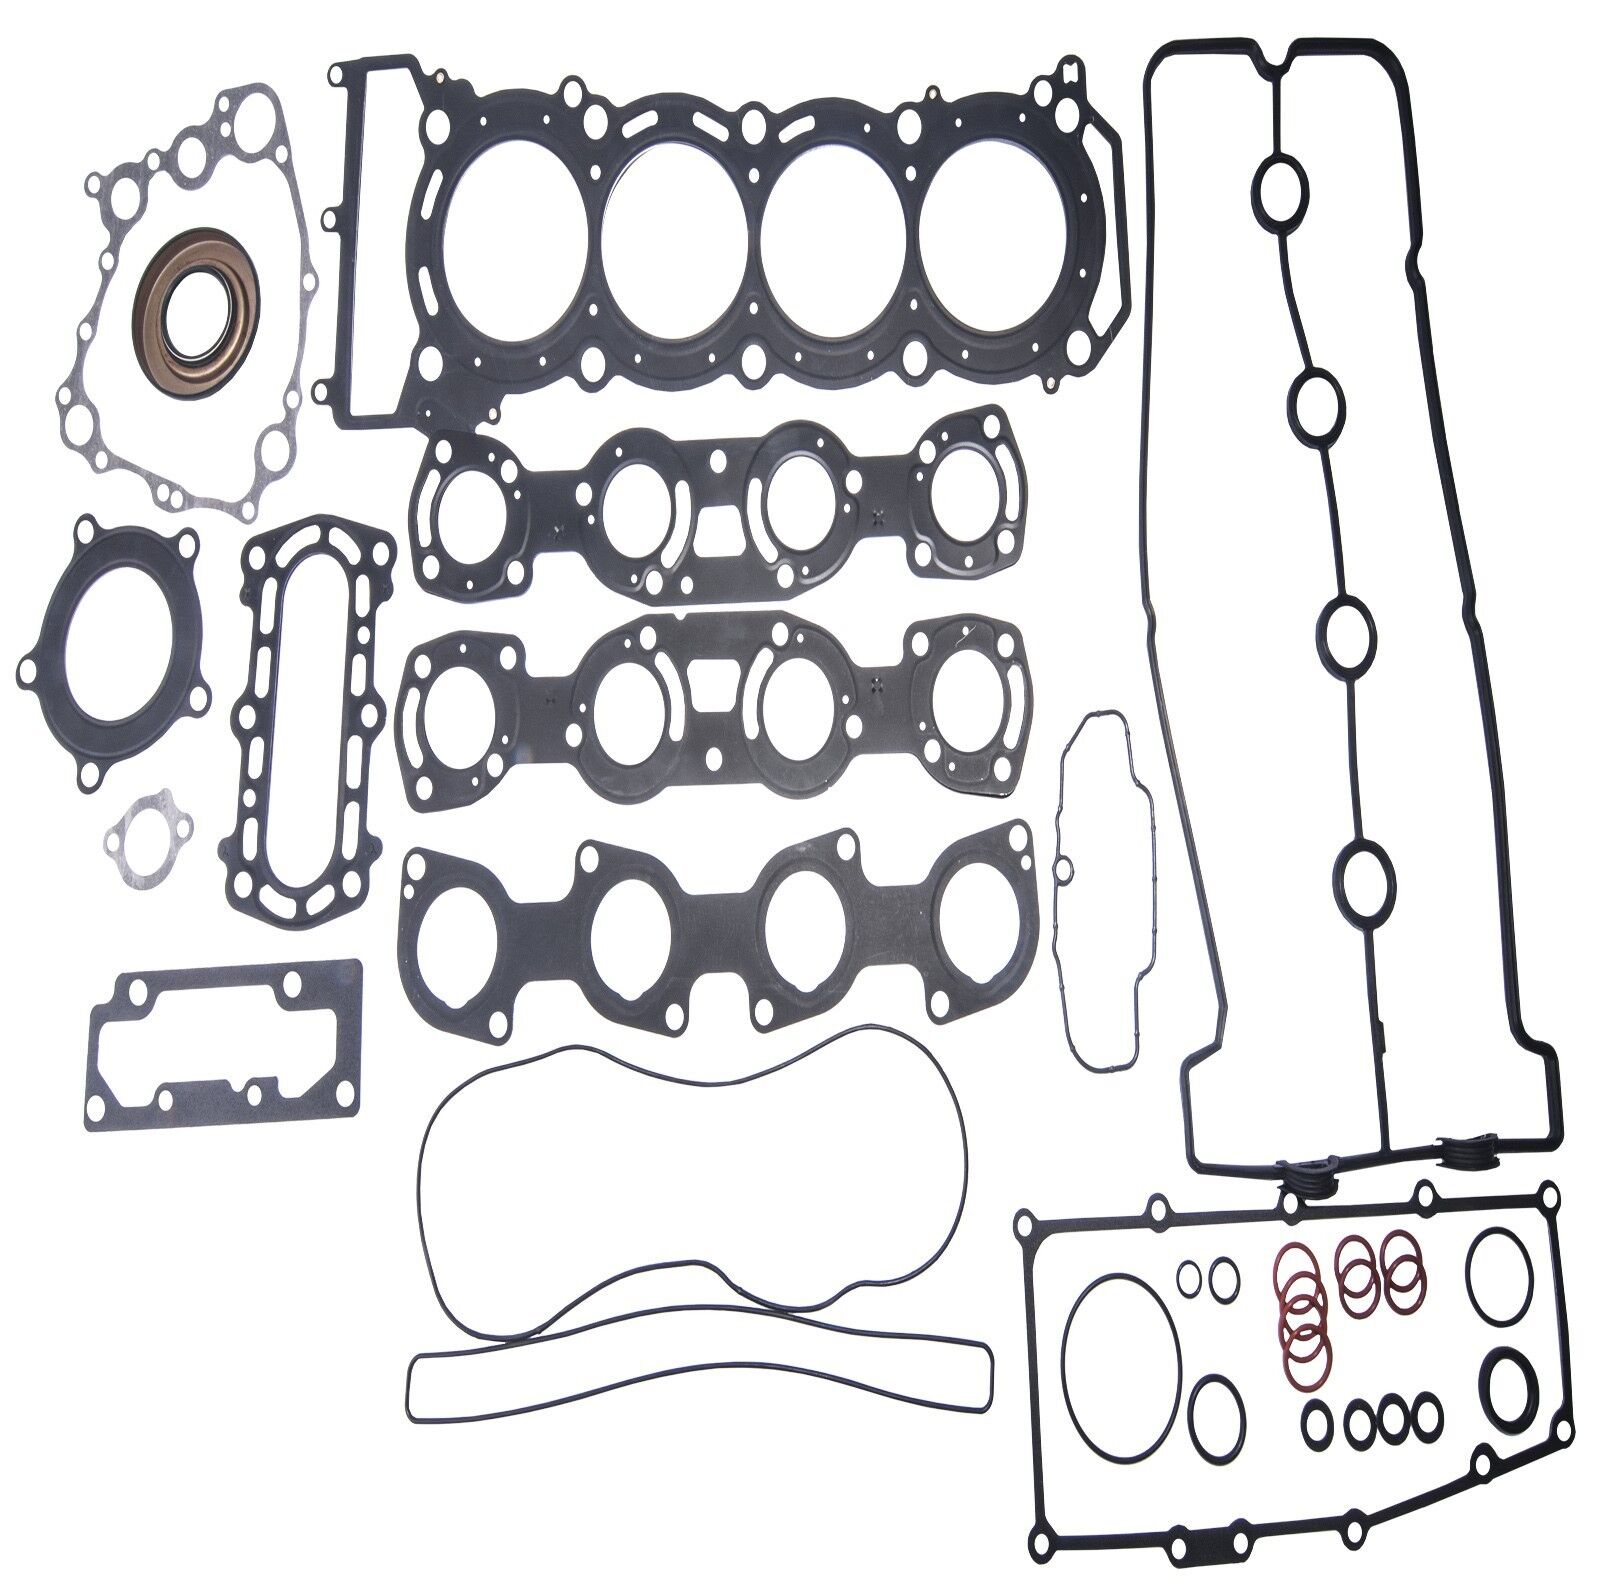 Yamaha Complete Engine Gasket Kit 2011-2013 FX Cruiser HO